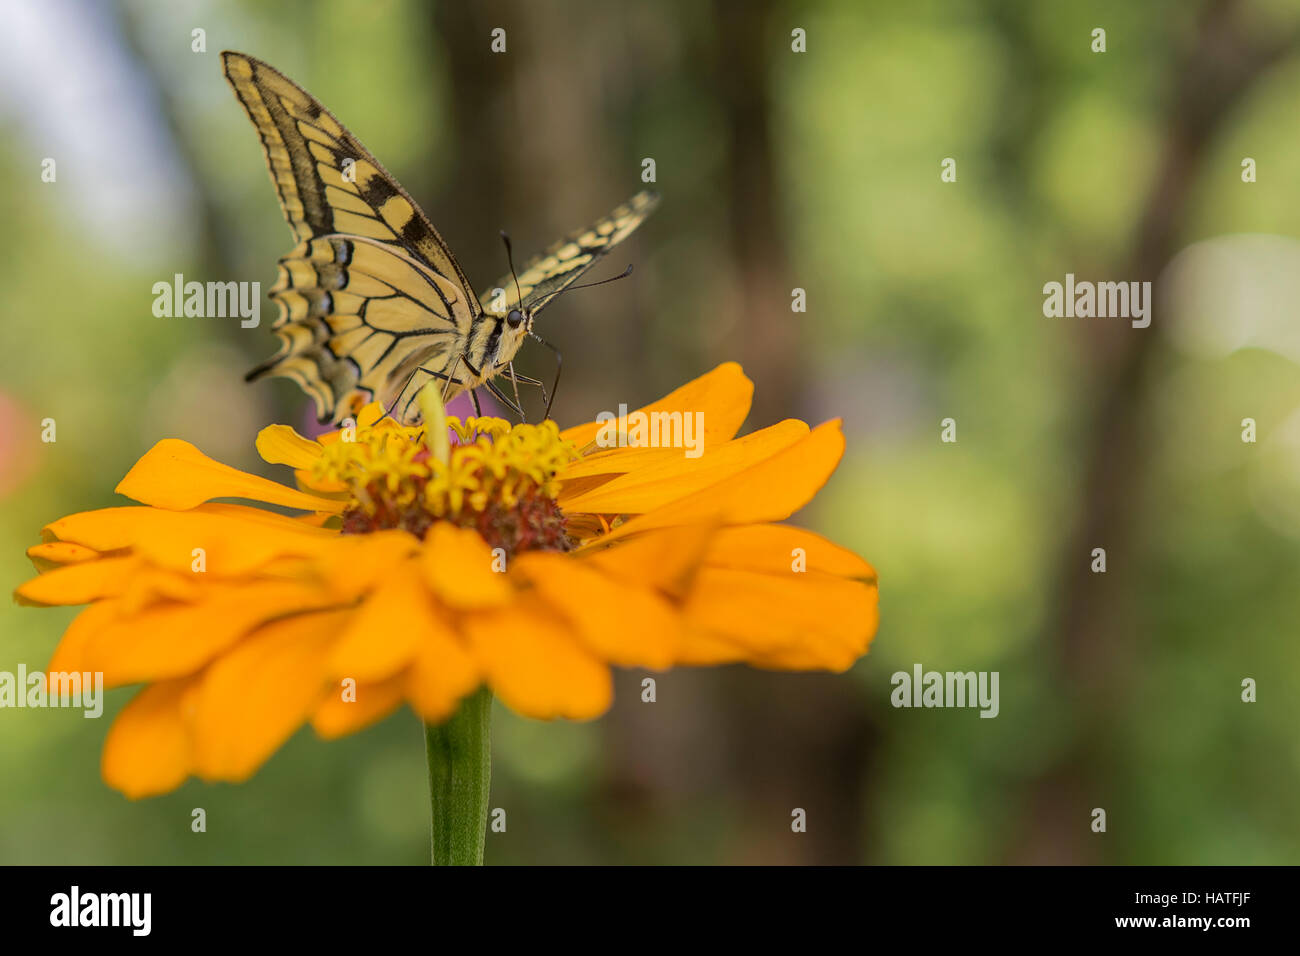 Tiger Swallowtail butterfly (Papilio glaucas) with yellow and black striped markings - Stock Image